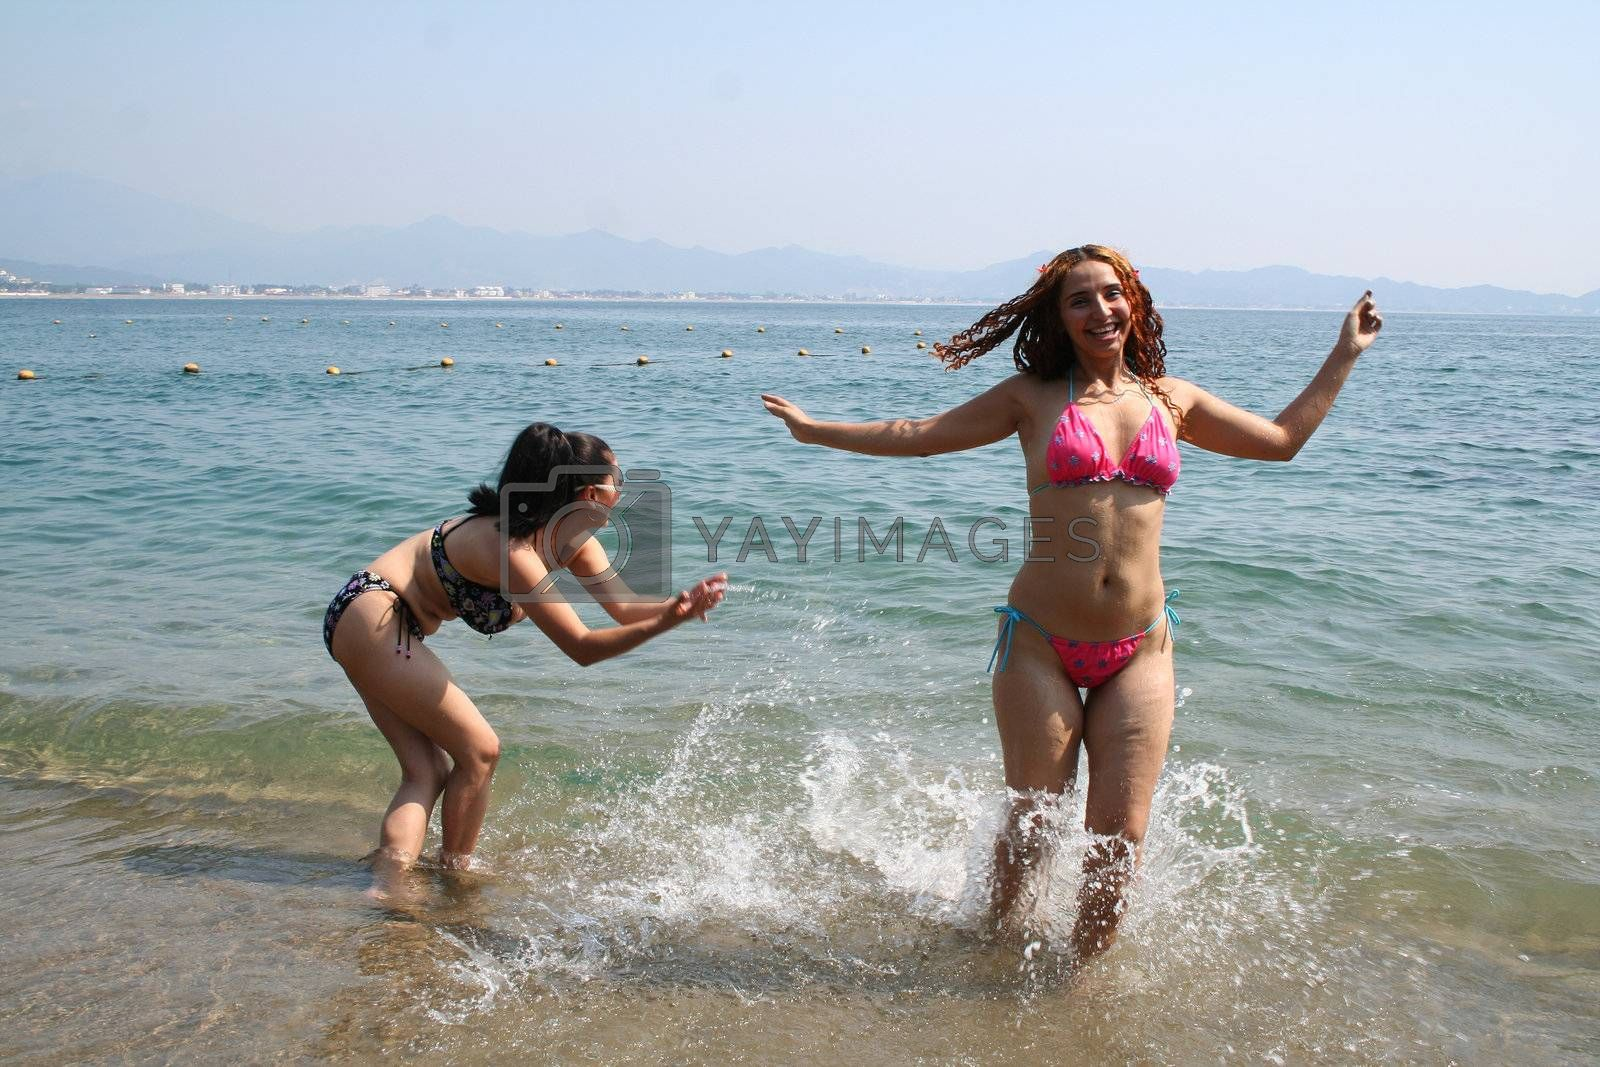 Portrait of 2 beautiful woman playing on beach and waves